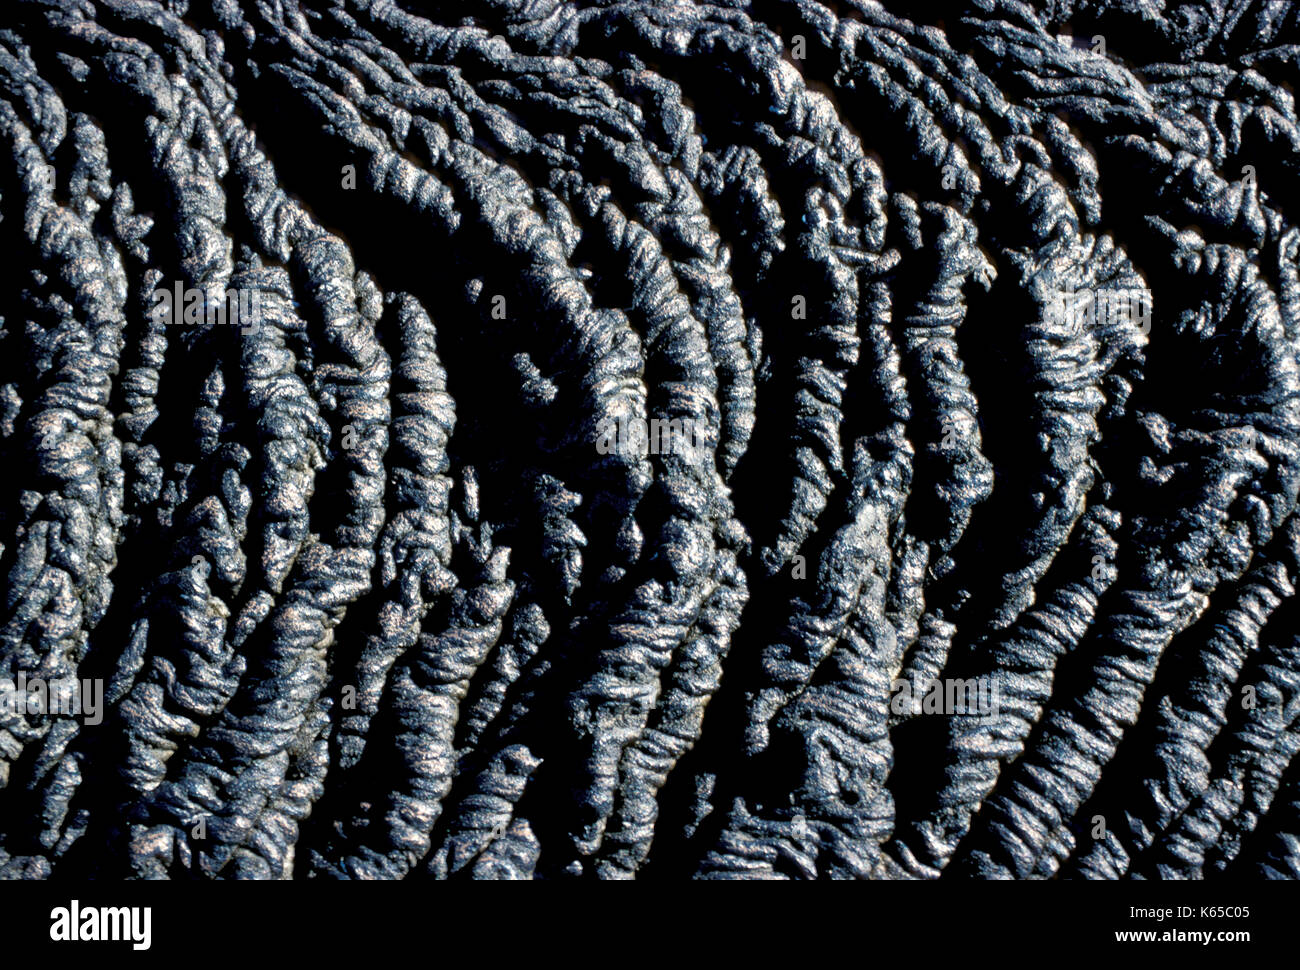 Close up detail of Pahoehoe Lava, Galapagos Islands, basaltic, ropy surface - Stock Image